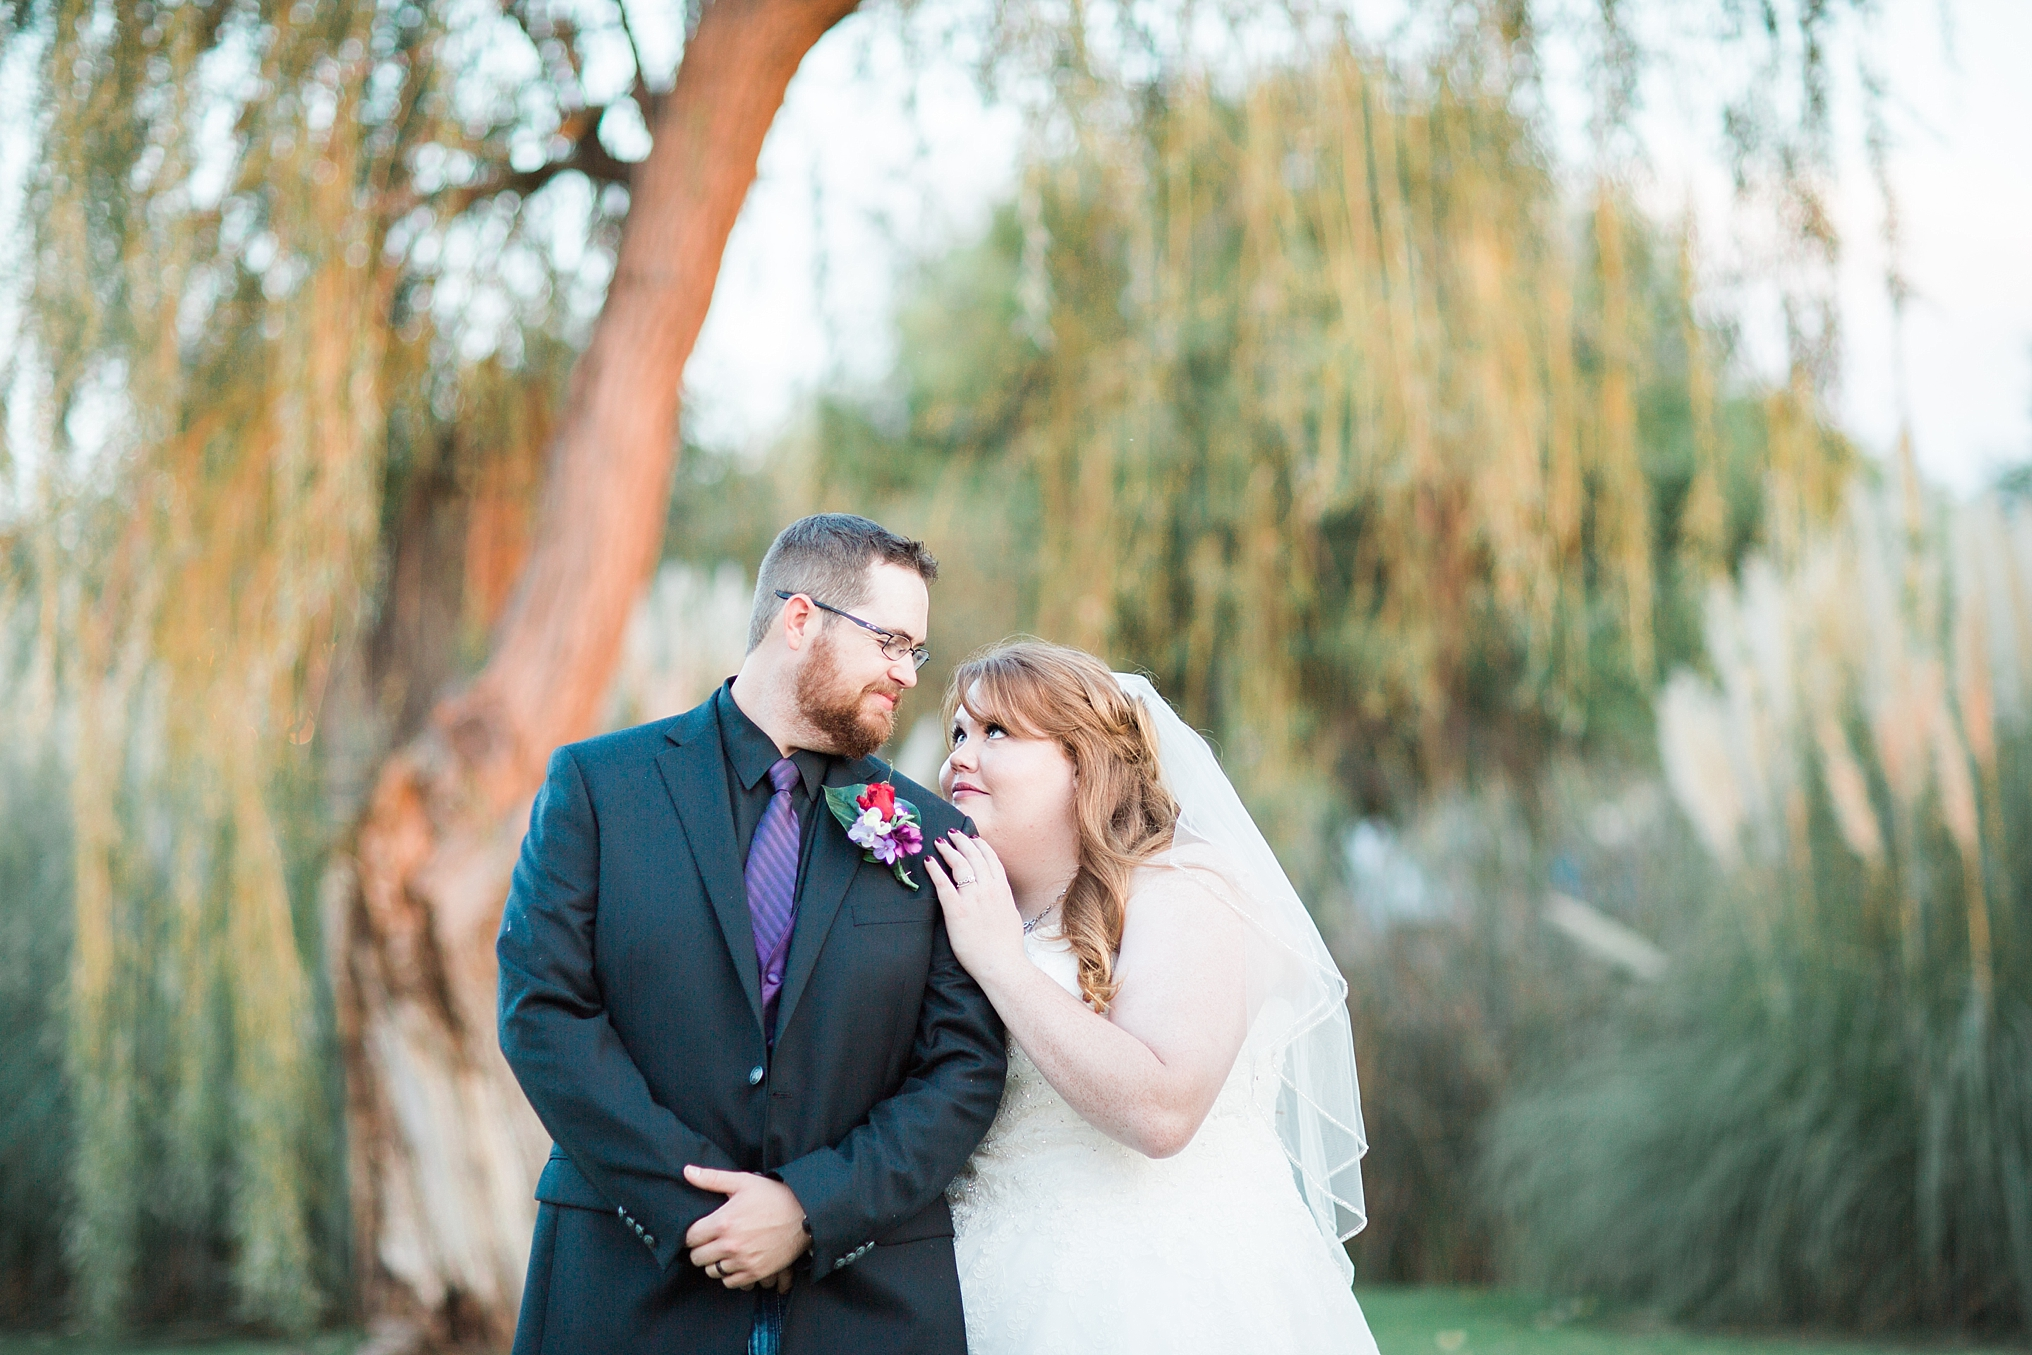 Wedding Photography Odessa Tx: The Shack In The Back